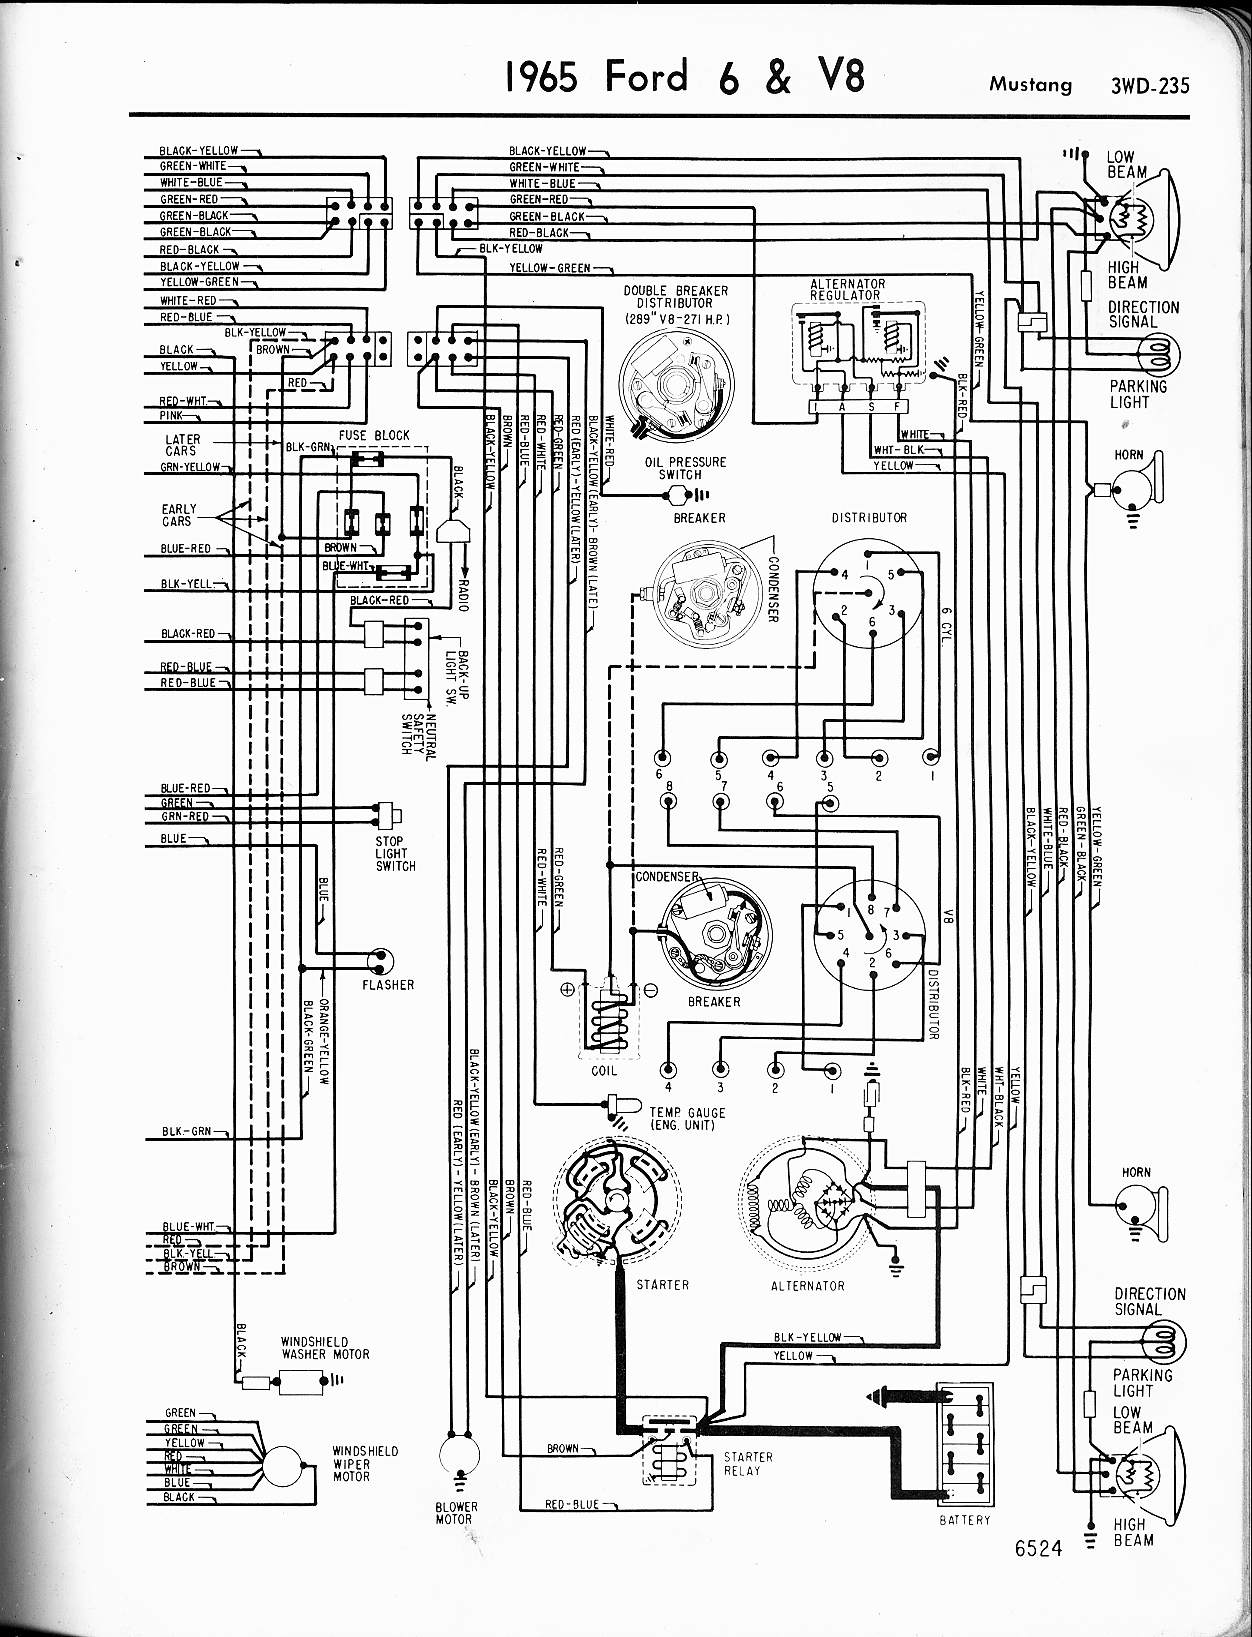 hight resolution of 1969 ford alternator wiring schematic simple wiring diagramford diagrams 1969 ford charging system schematic 1969 ford